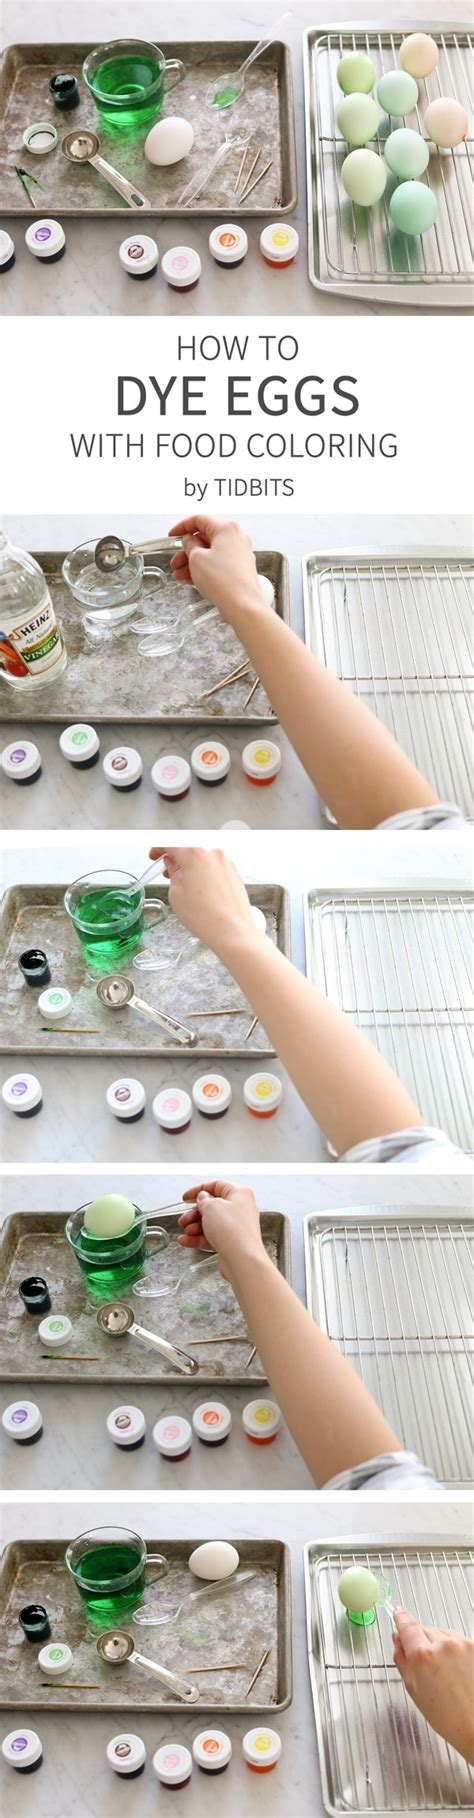 how to dye easter eggs with food coloring how to dye eggs with food coloring tidbits